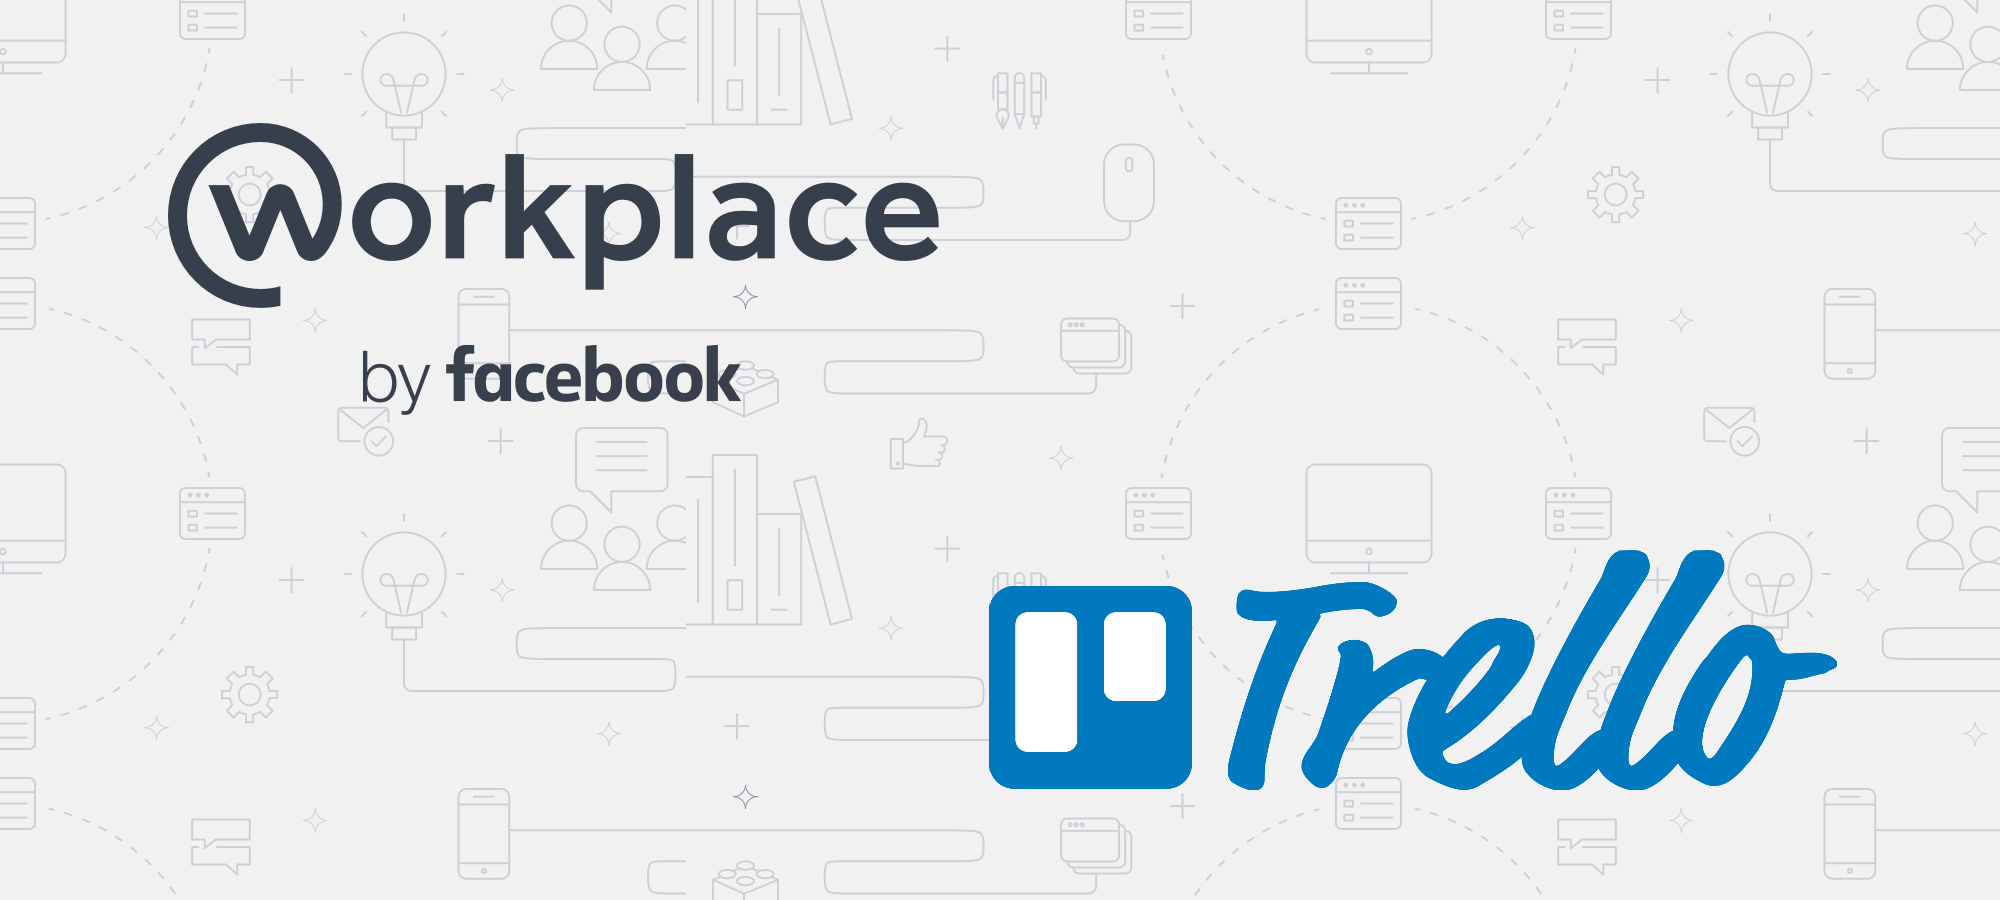 workplace-trello-resources-page-thumb